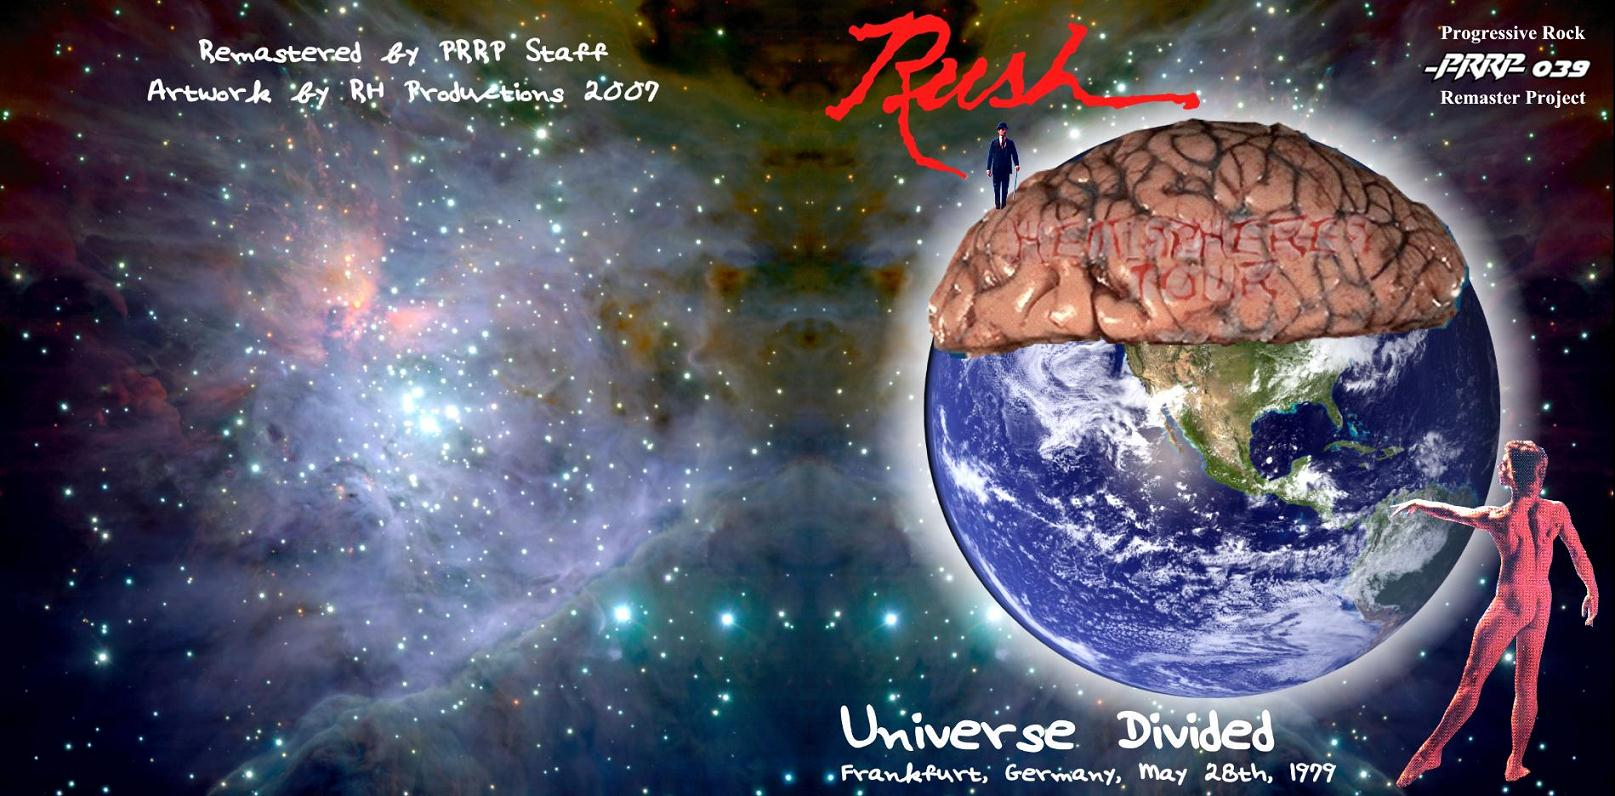 1979-05-28-Universe_Divided-Front